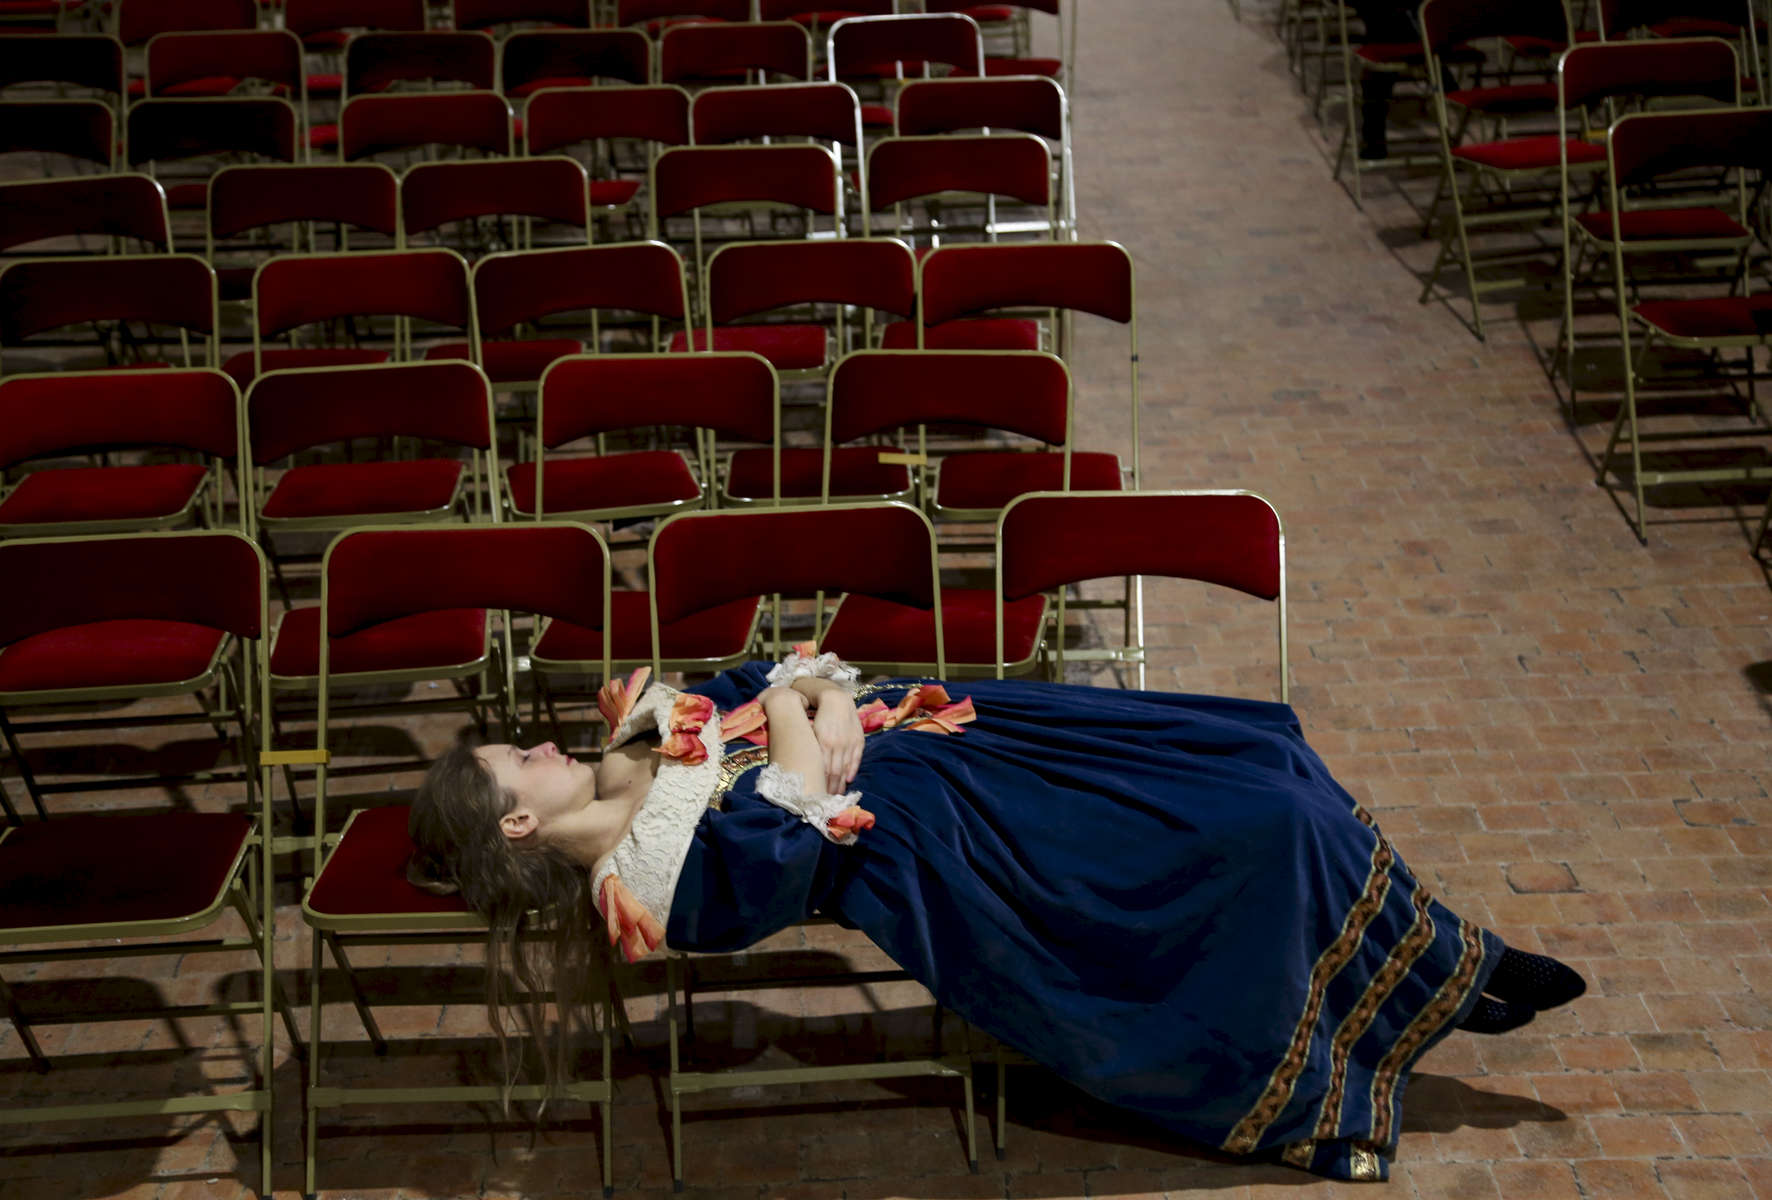 Musician Clémentine Albessard sleeps on chairs between two performances.